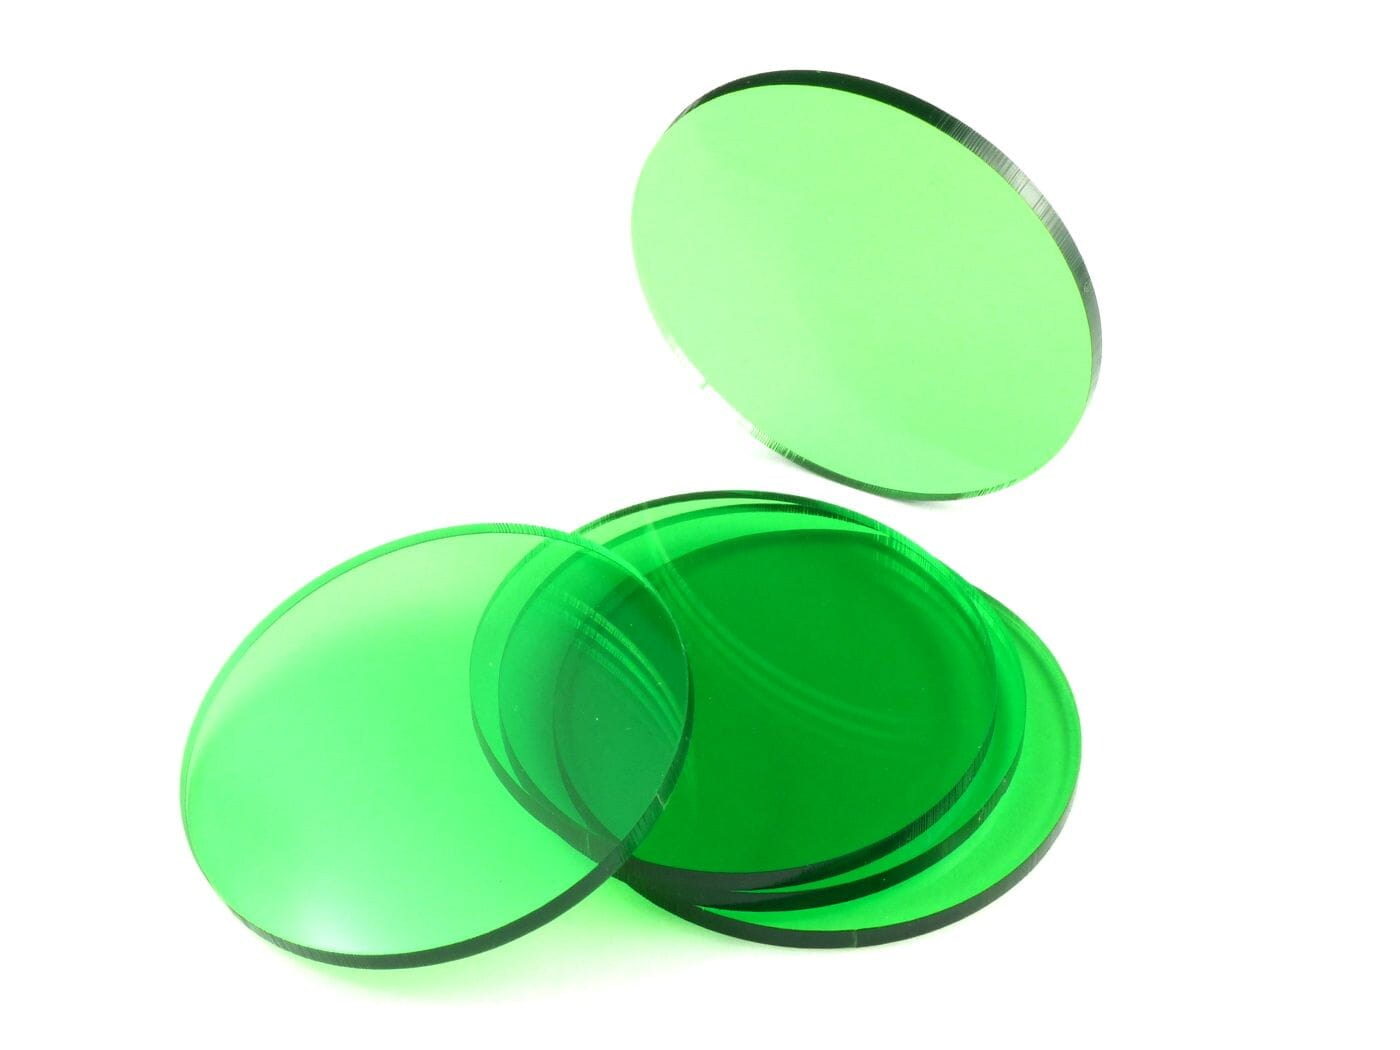 Acrylic miniature bases (5 pcs), round, clear, green, 55 x 3 mm - 1